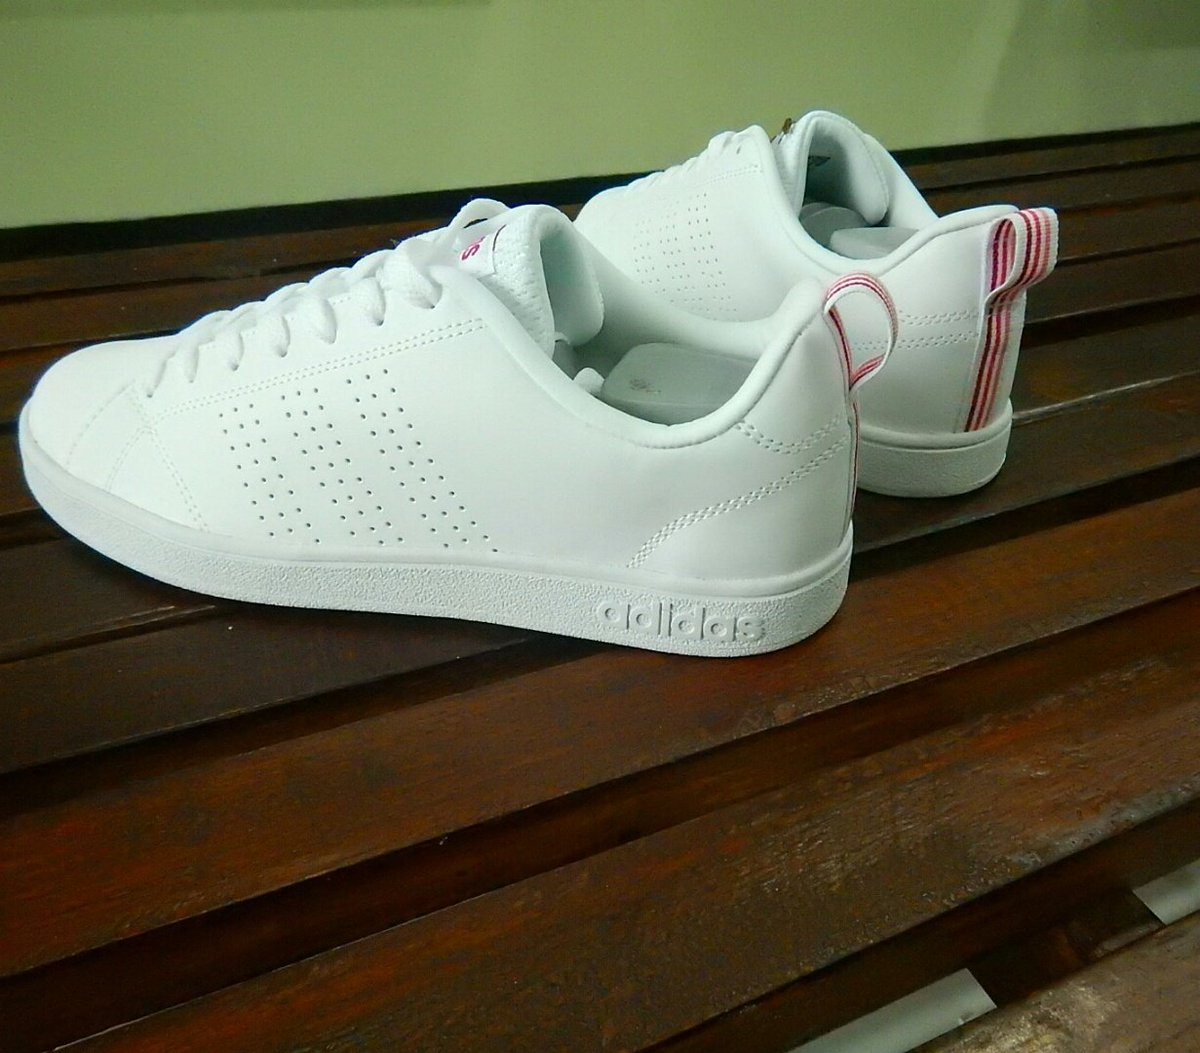 Pegashoes Bandung On Twitter Adidas Neo Advantage Clean Size 395 Full White Original Made In Indonesia Box Replaced Adidasneoadvantage Neoadvantage